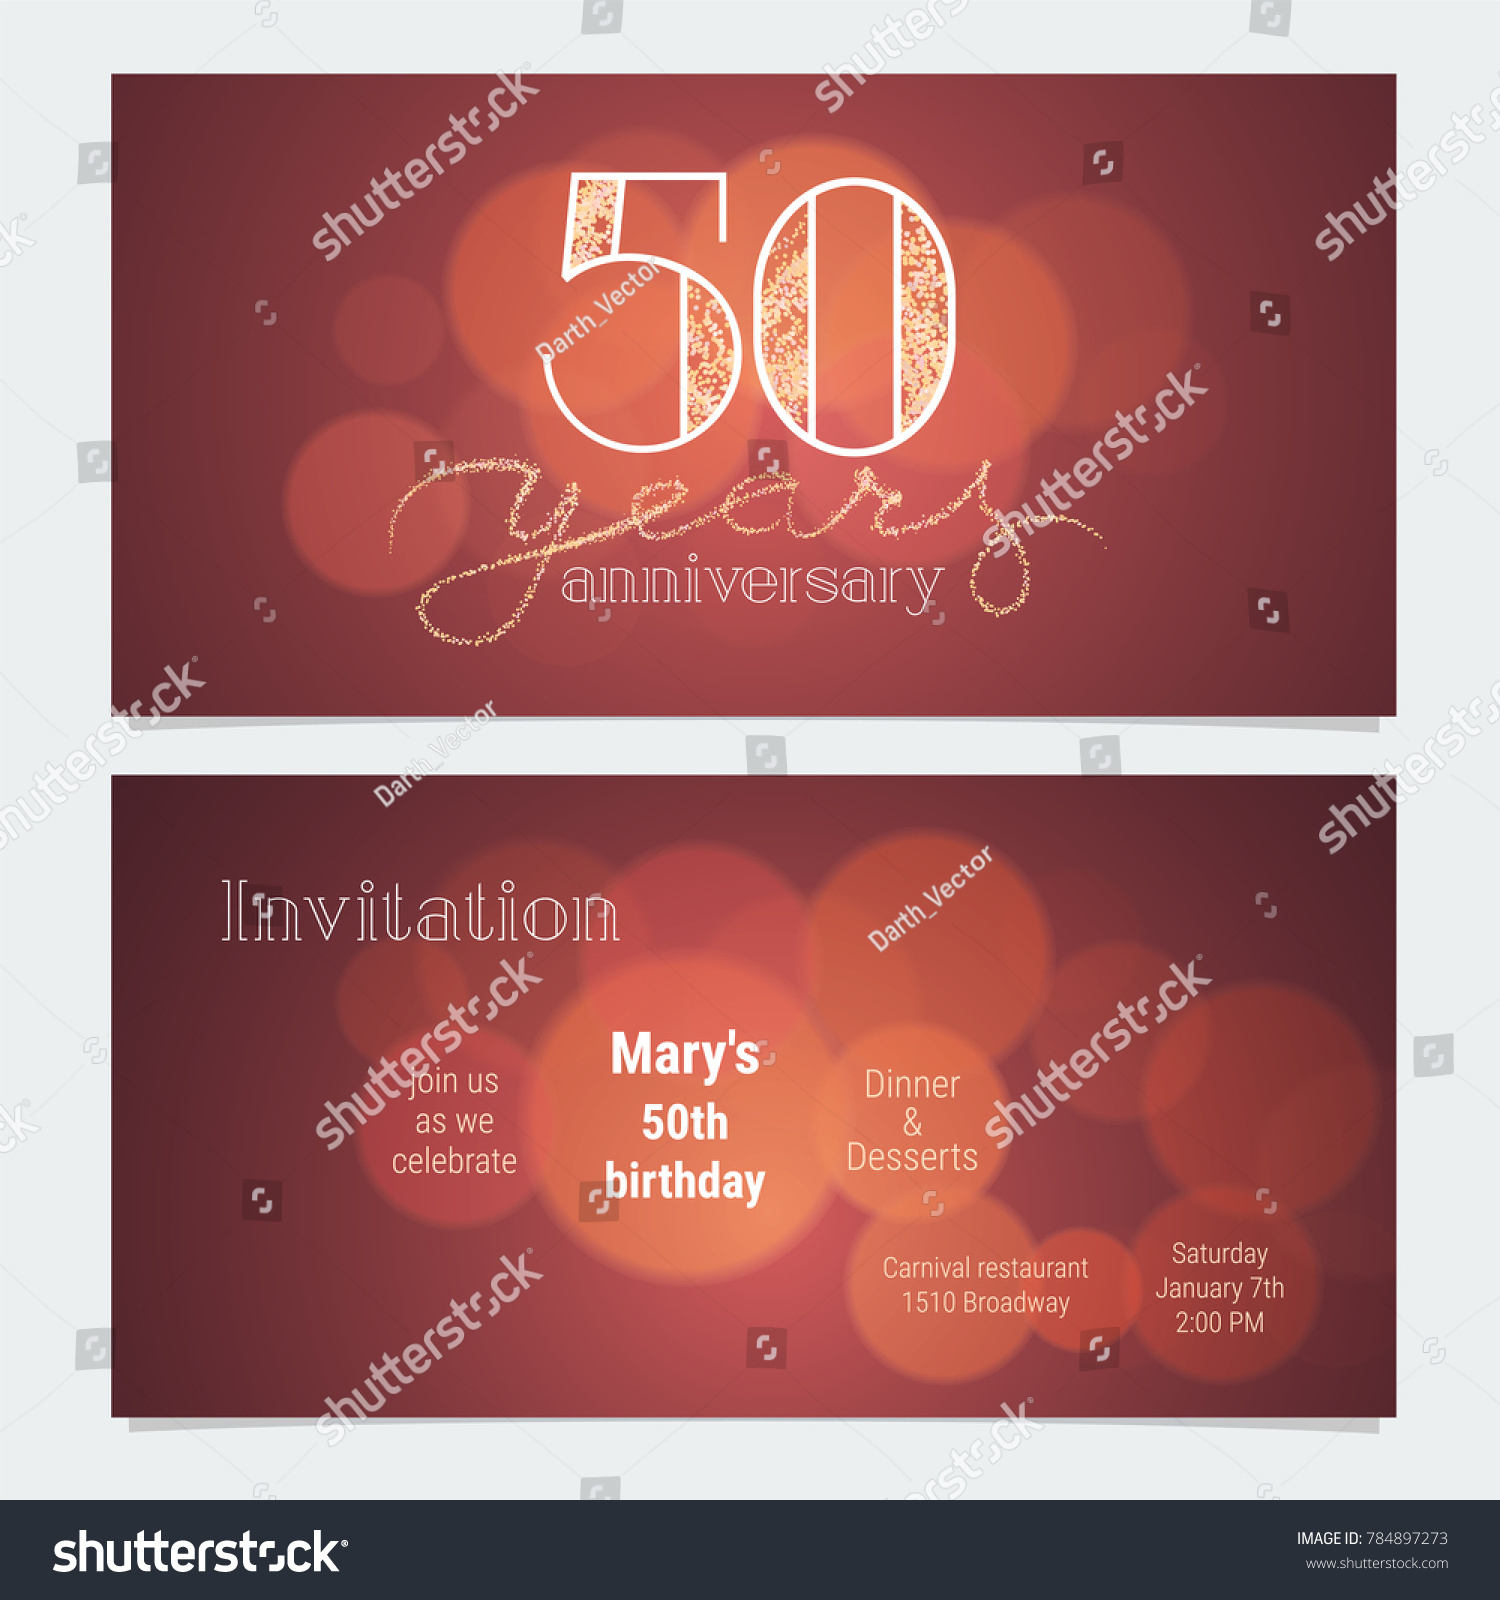 Luxury Birthday Dinner Invite Text Model - Invitations and ...